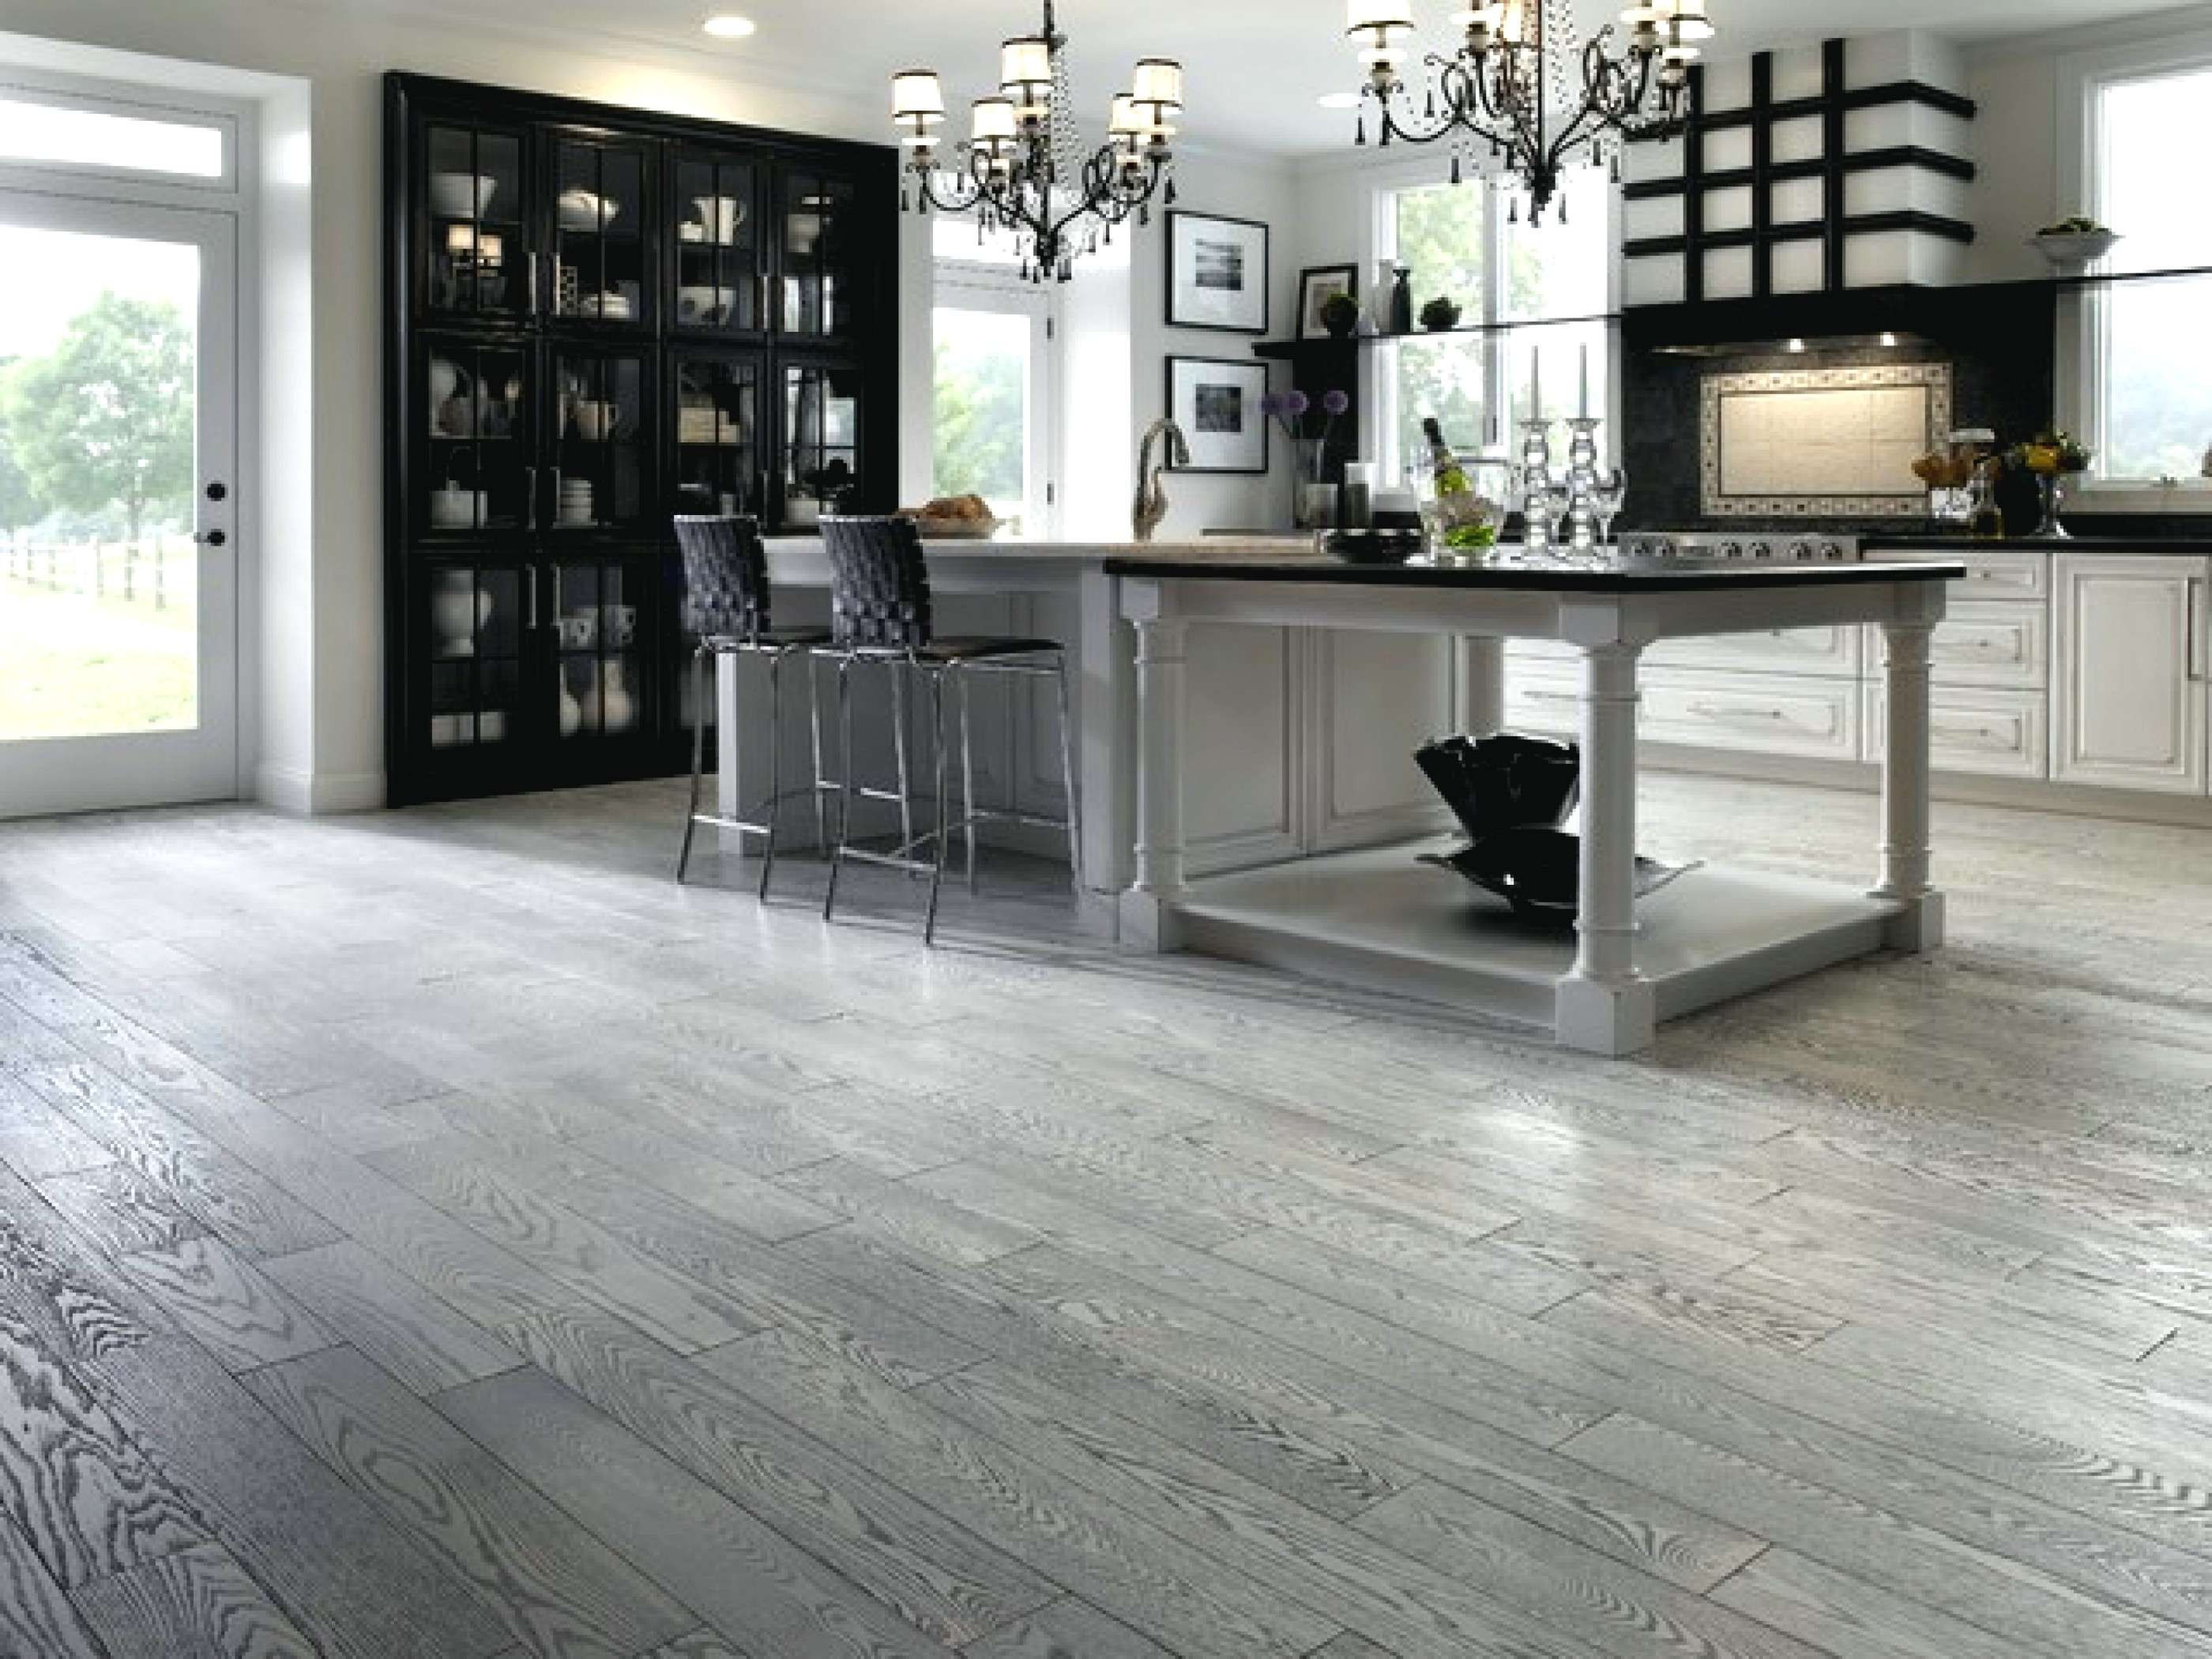 kitchen ideas with dark hardwood floors of engineered wood floors kitchen awesome floor dark grey engineered with engineered wood floors kitchen awesome floor dark grey engineered wood flooring designs floor hardwood